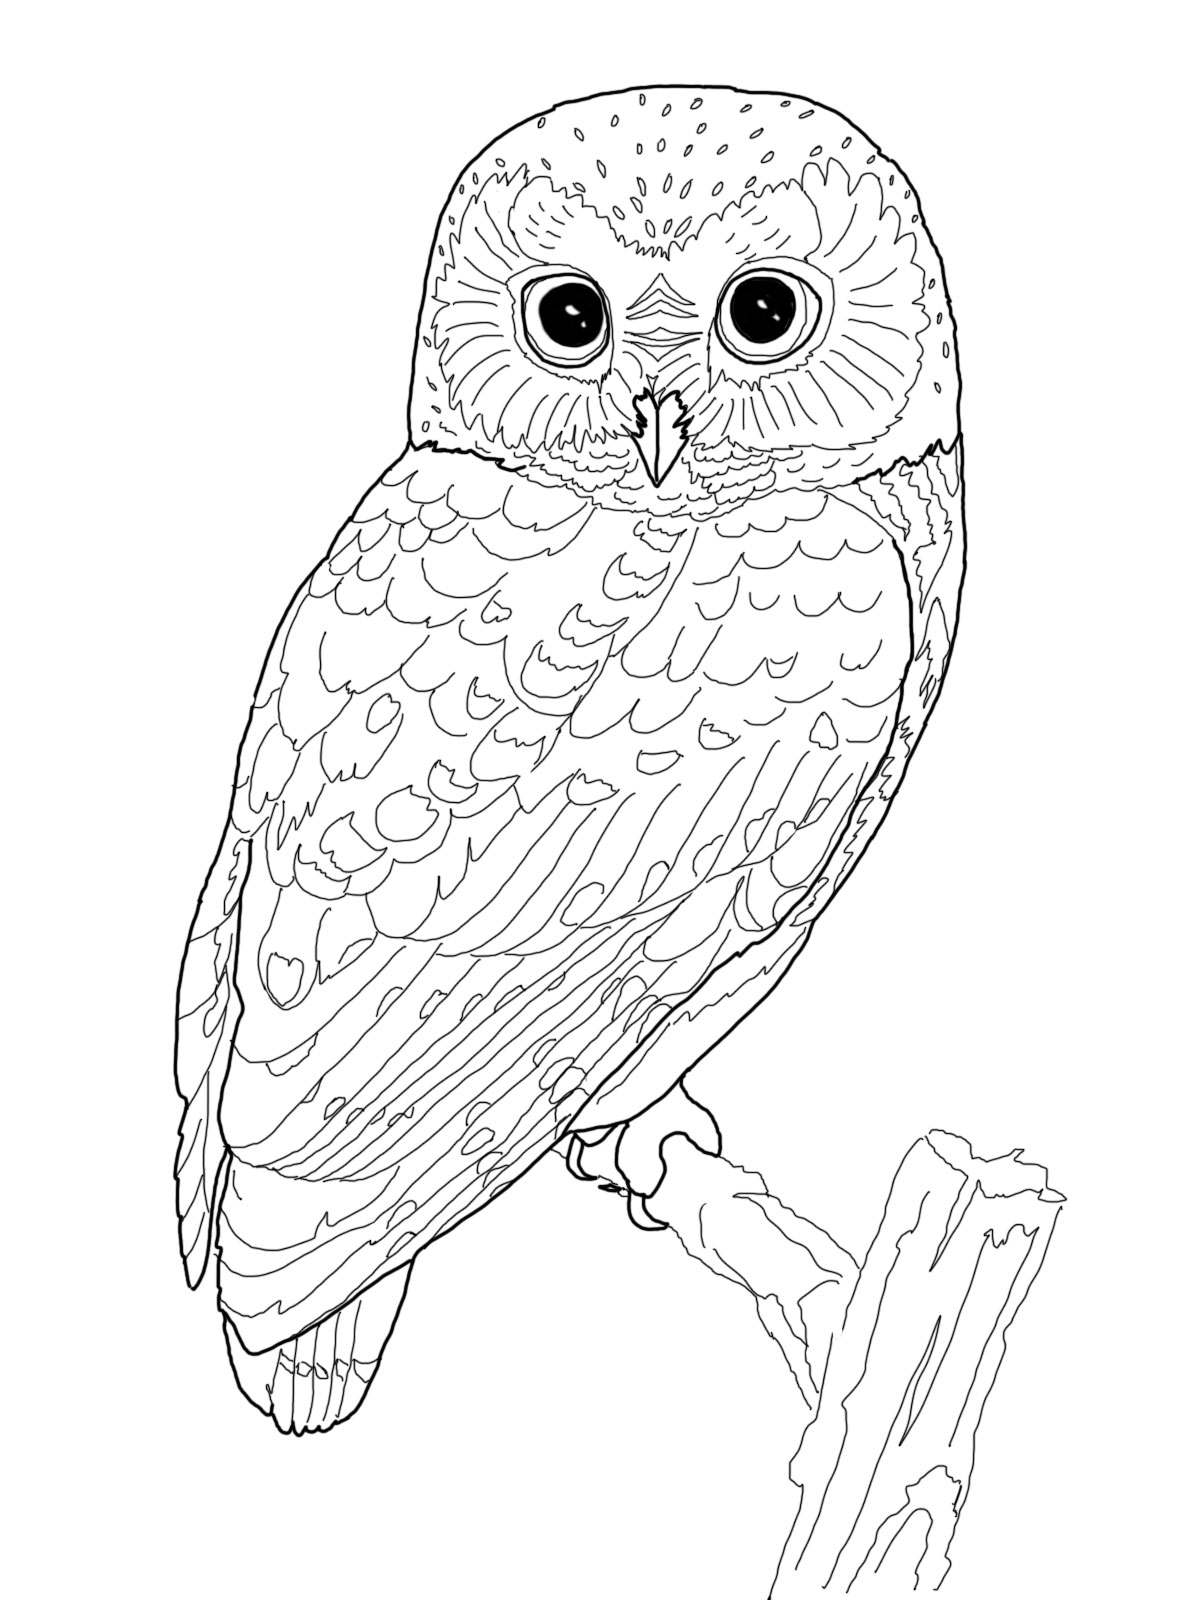 a owl coloring pages - photo #19